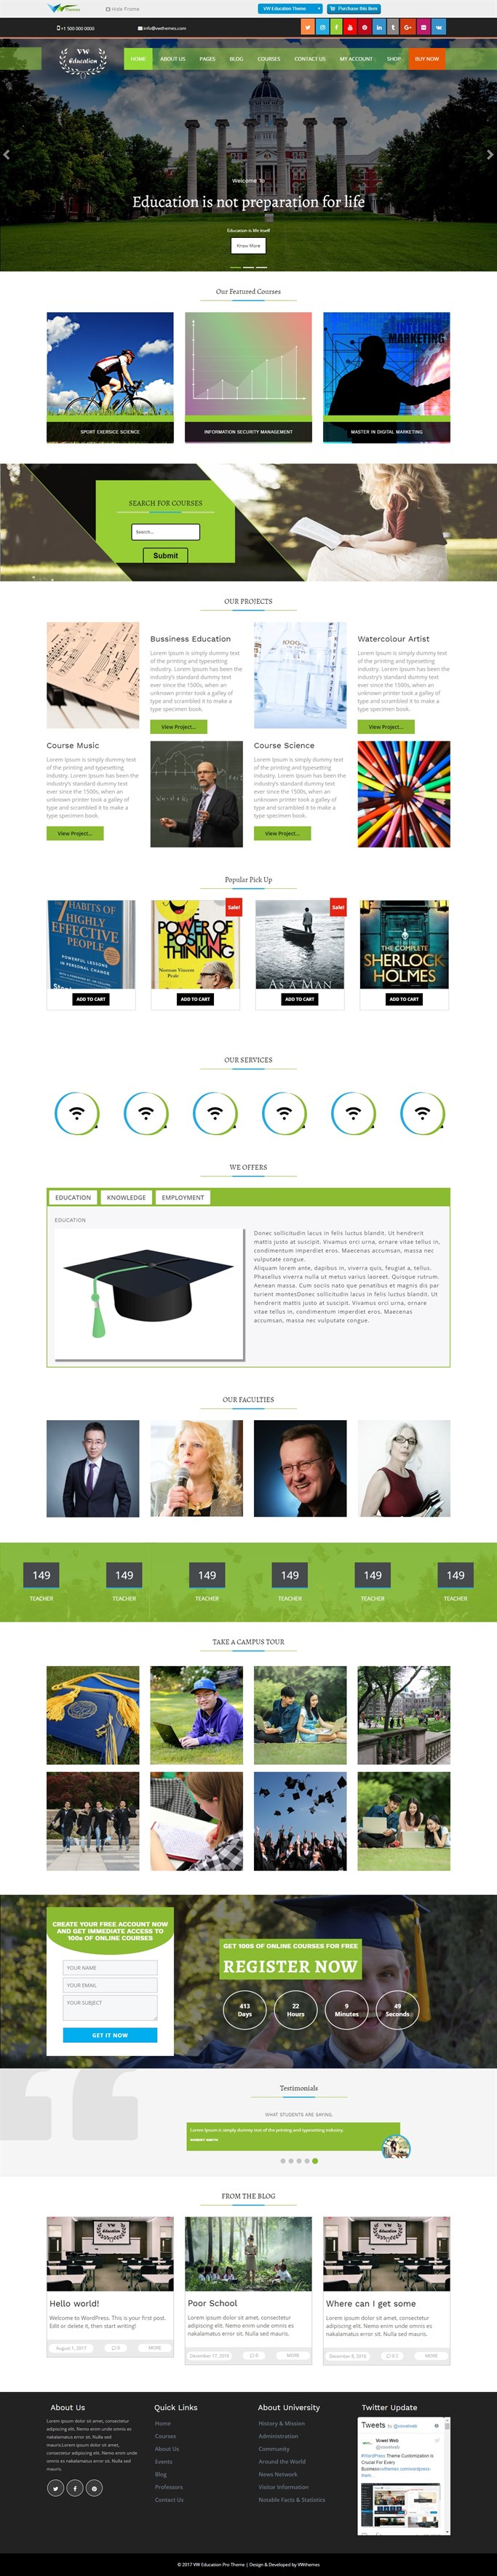 Screenshot of VW Education, Free WordPress Theme